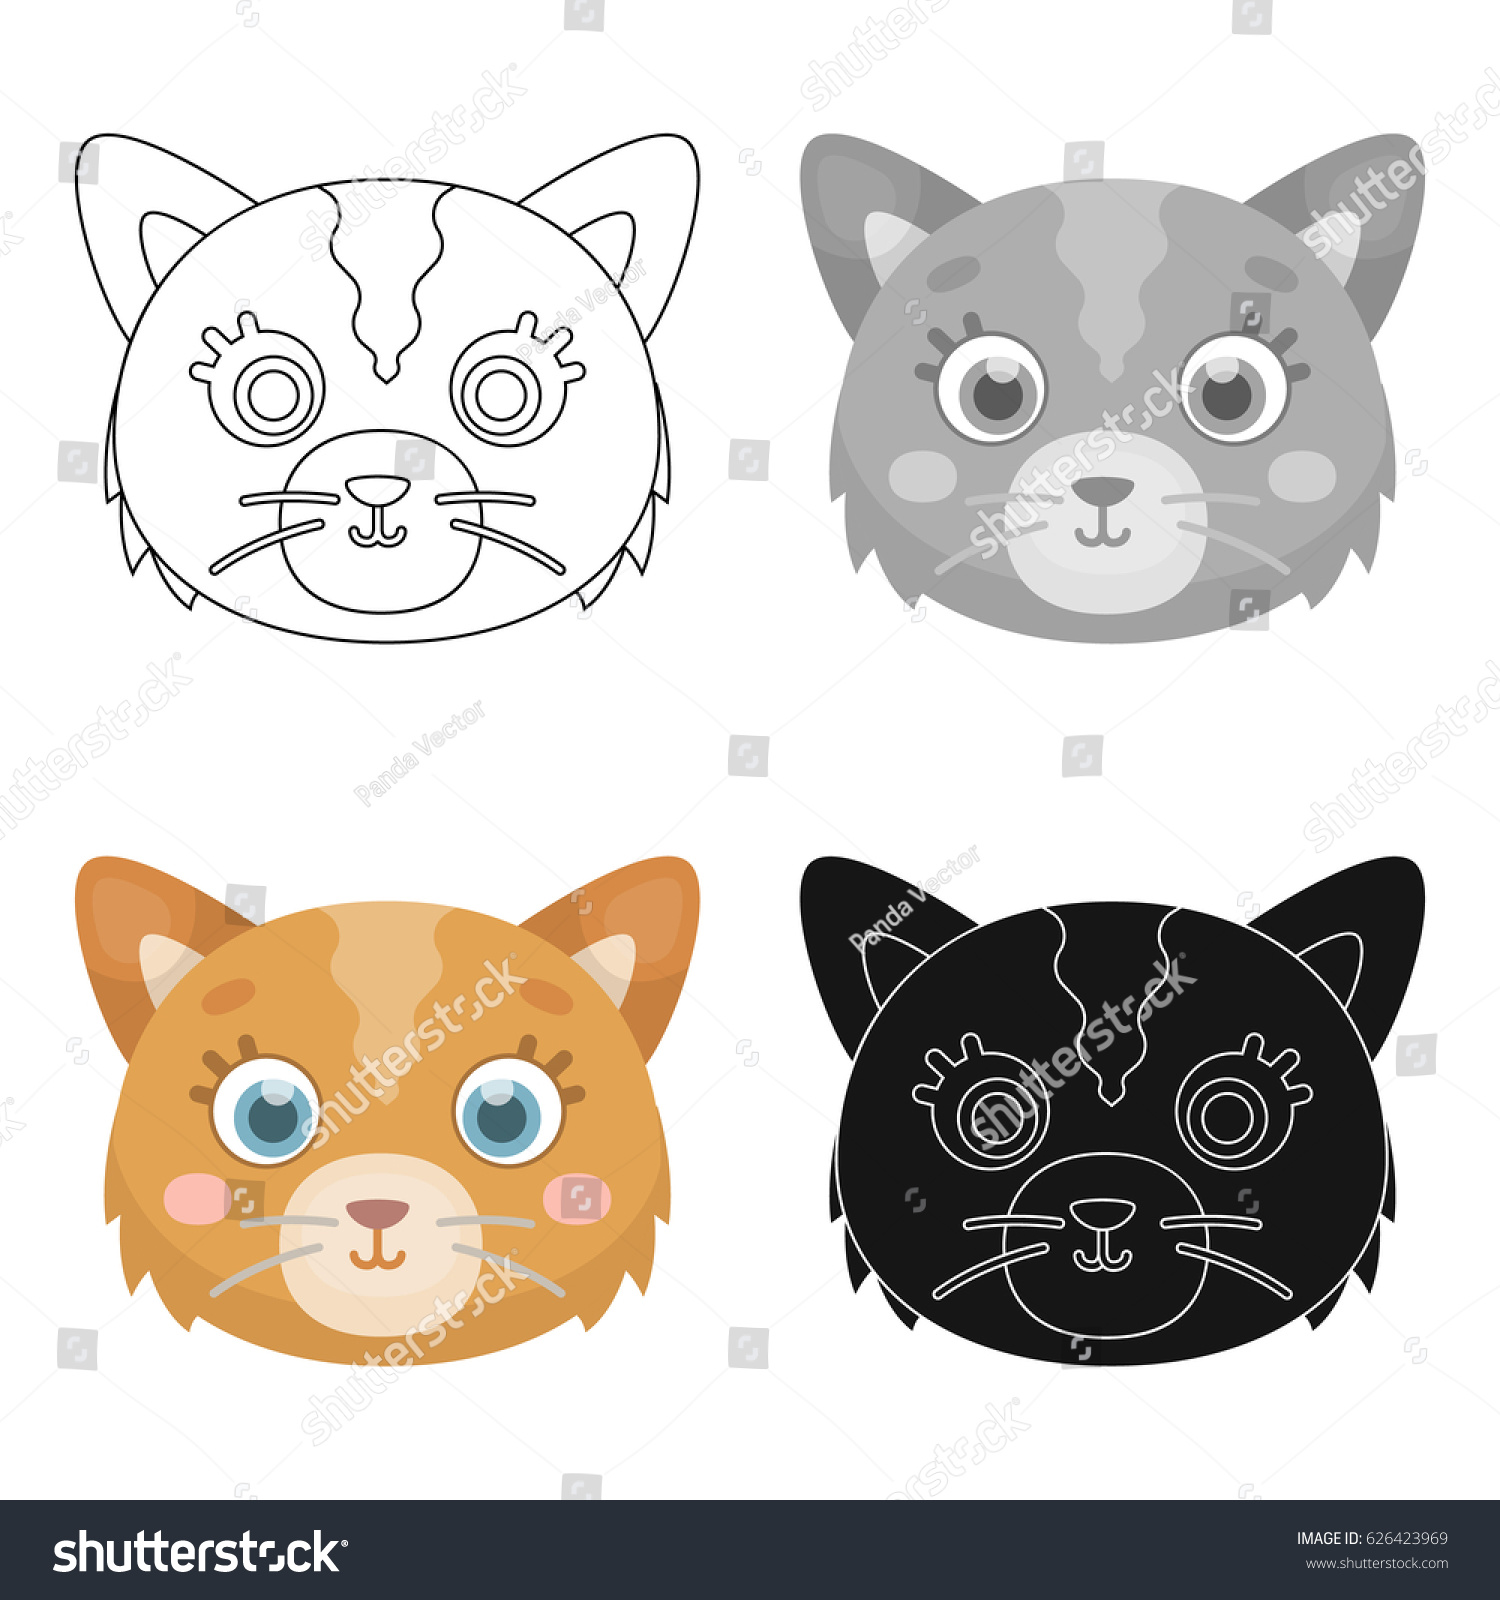 Cat Muzzle Icon In Cartoon Style Isolated On White Background